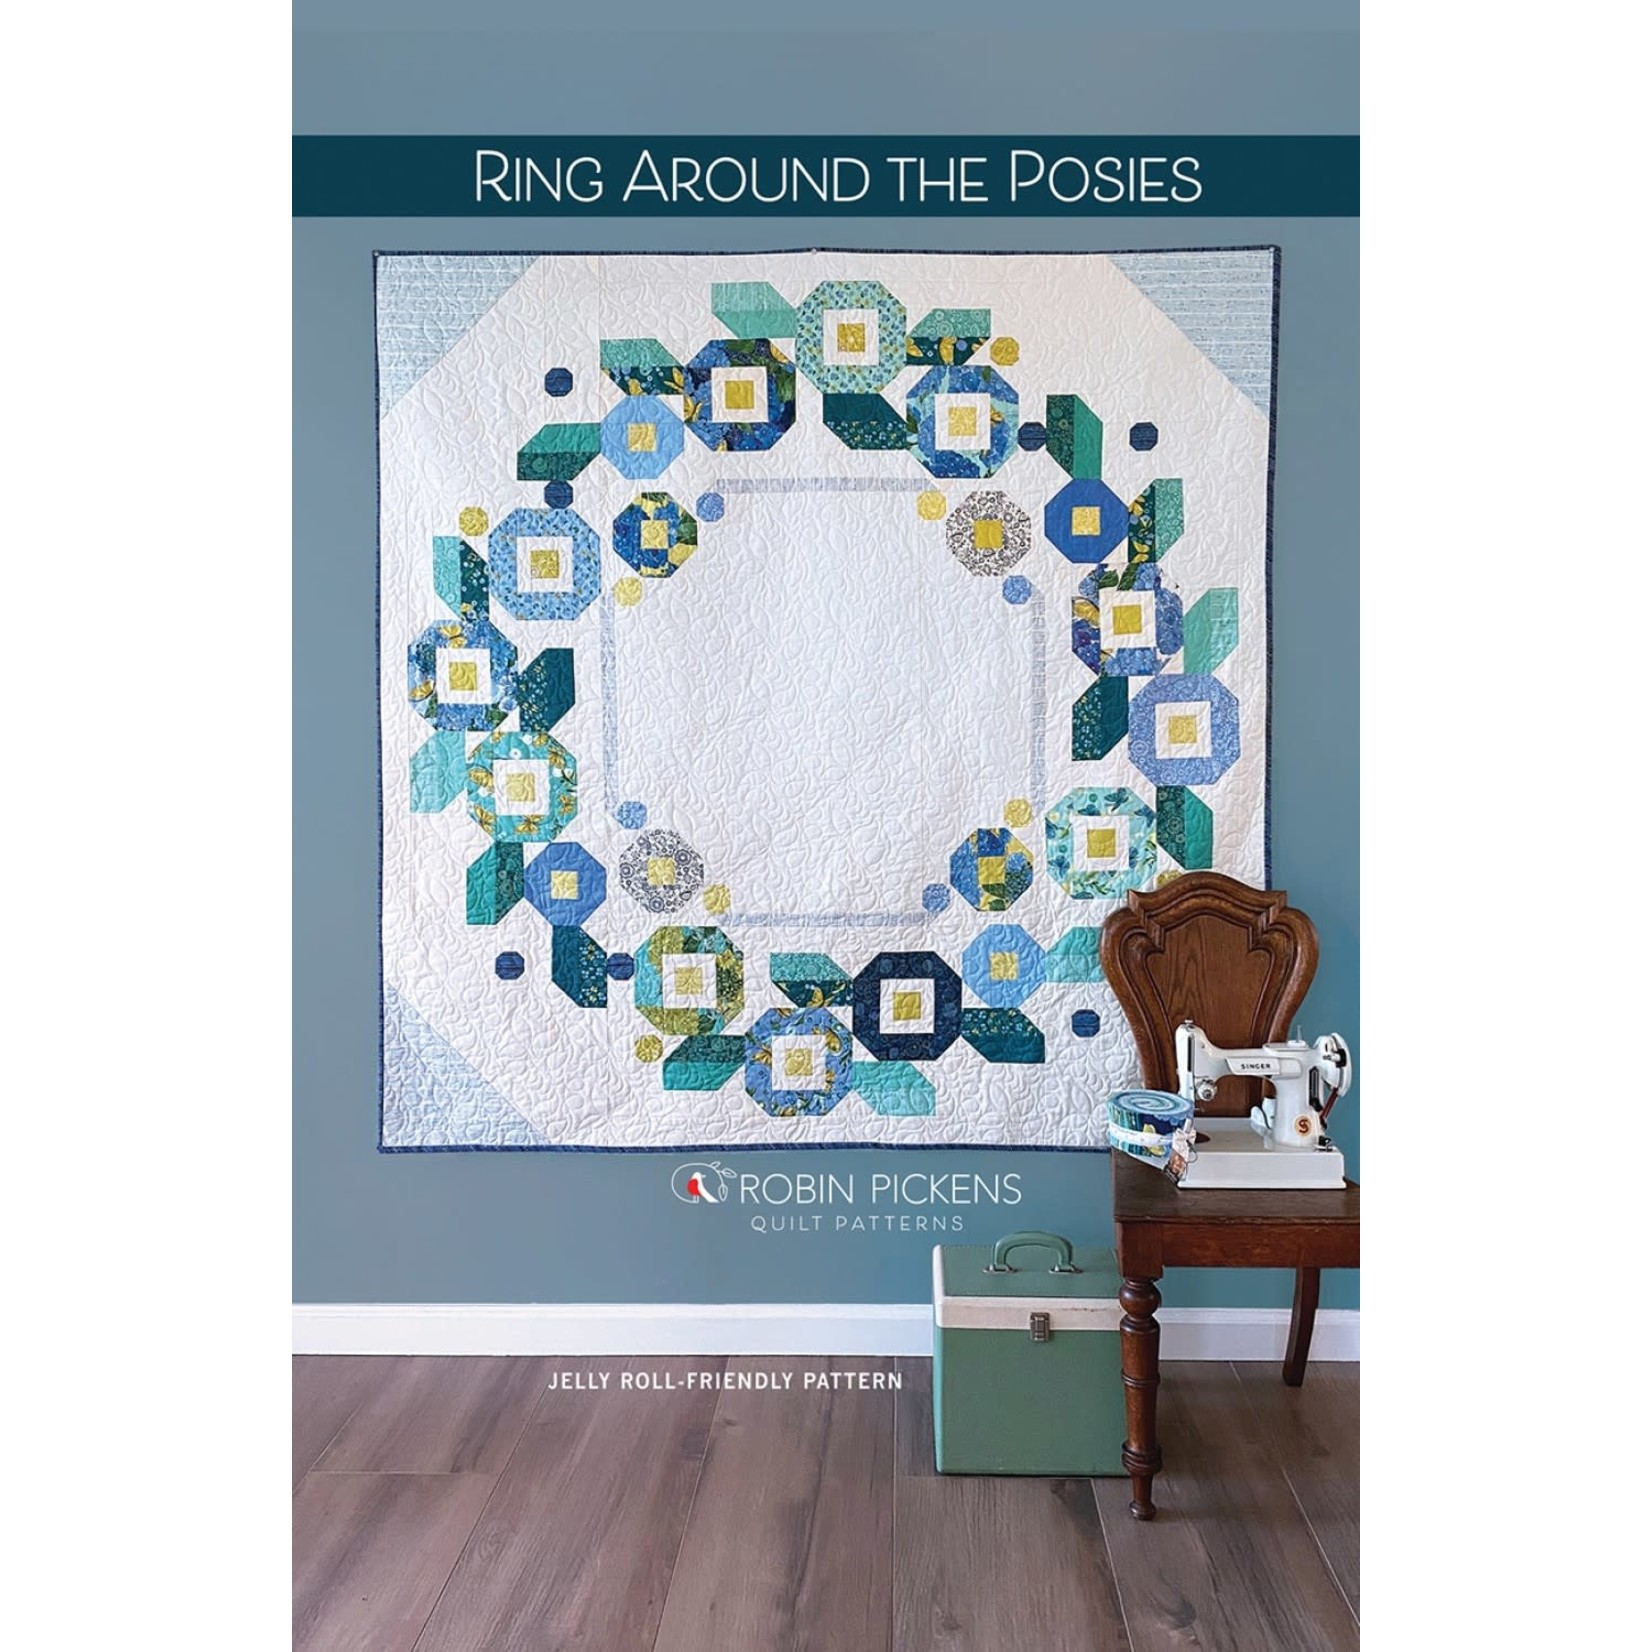 Robin Pickens Quilt Patterns Ring Around The Posies Quilt Pattern